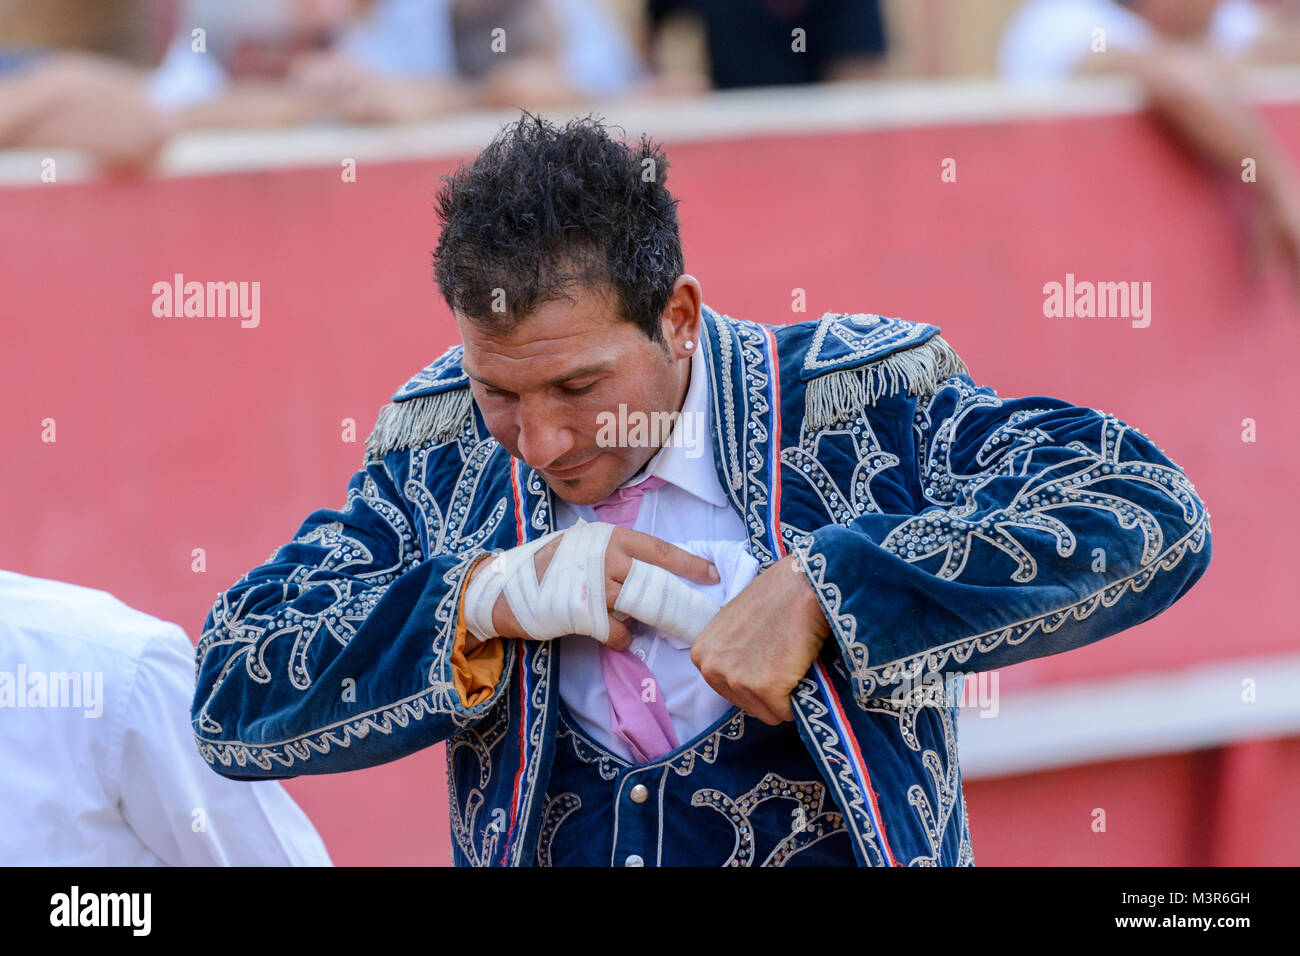 Course Landaise - a humane form of bullfighting involving dodging, leaping and somersaulting over agile horned wild Stock Photo